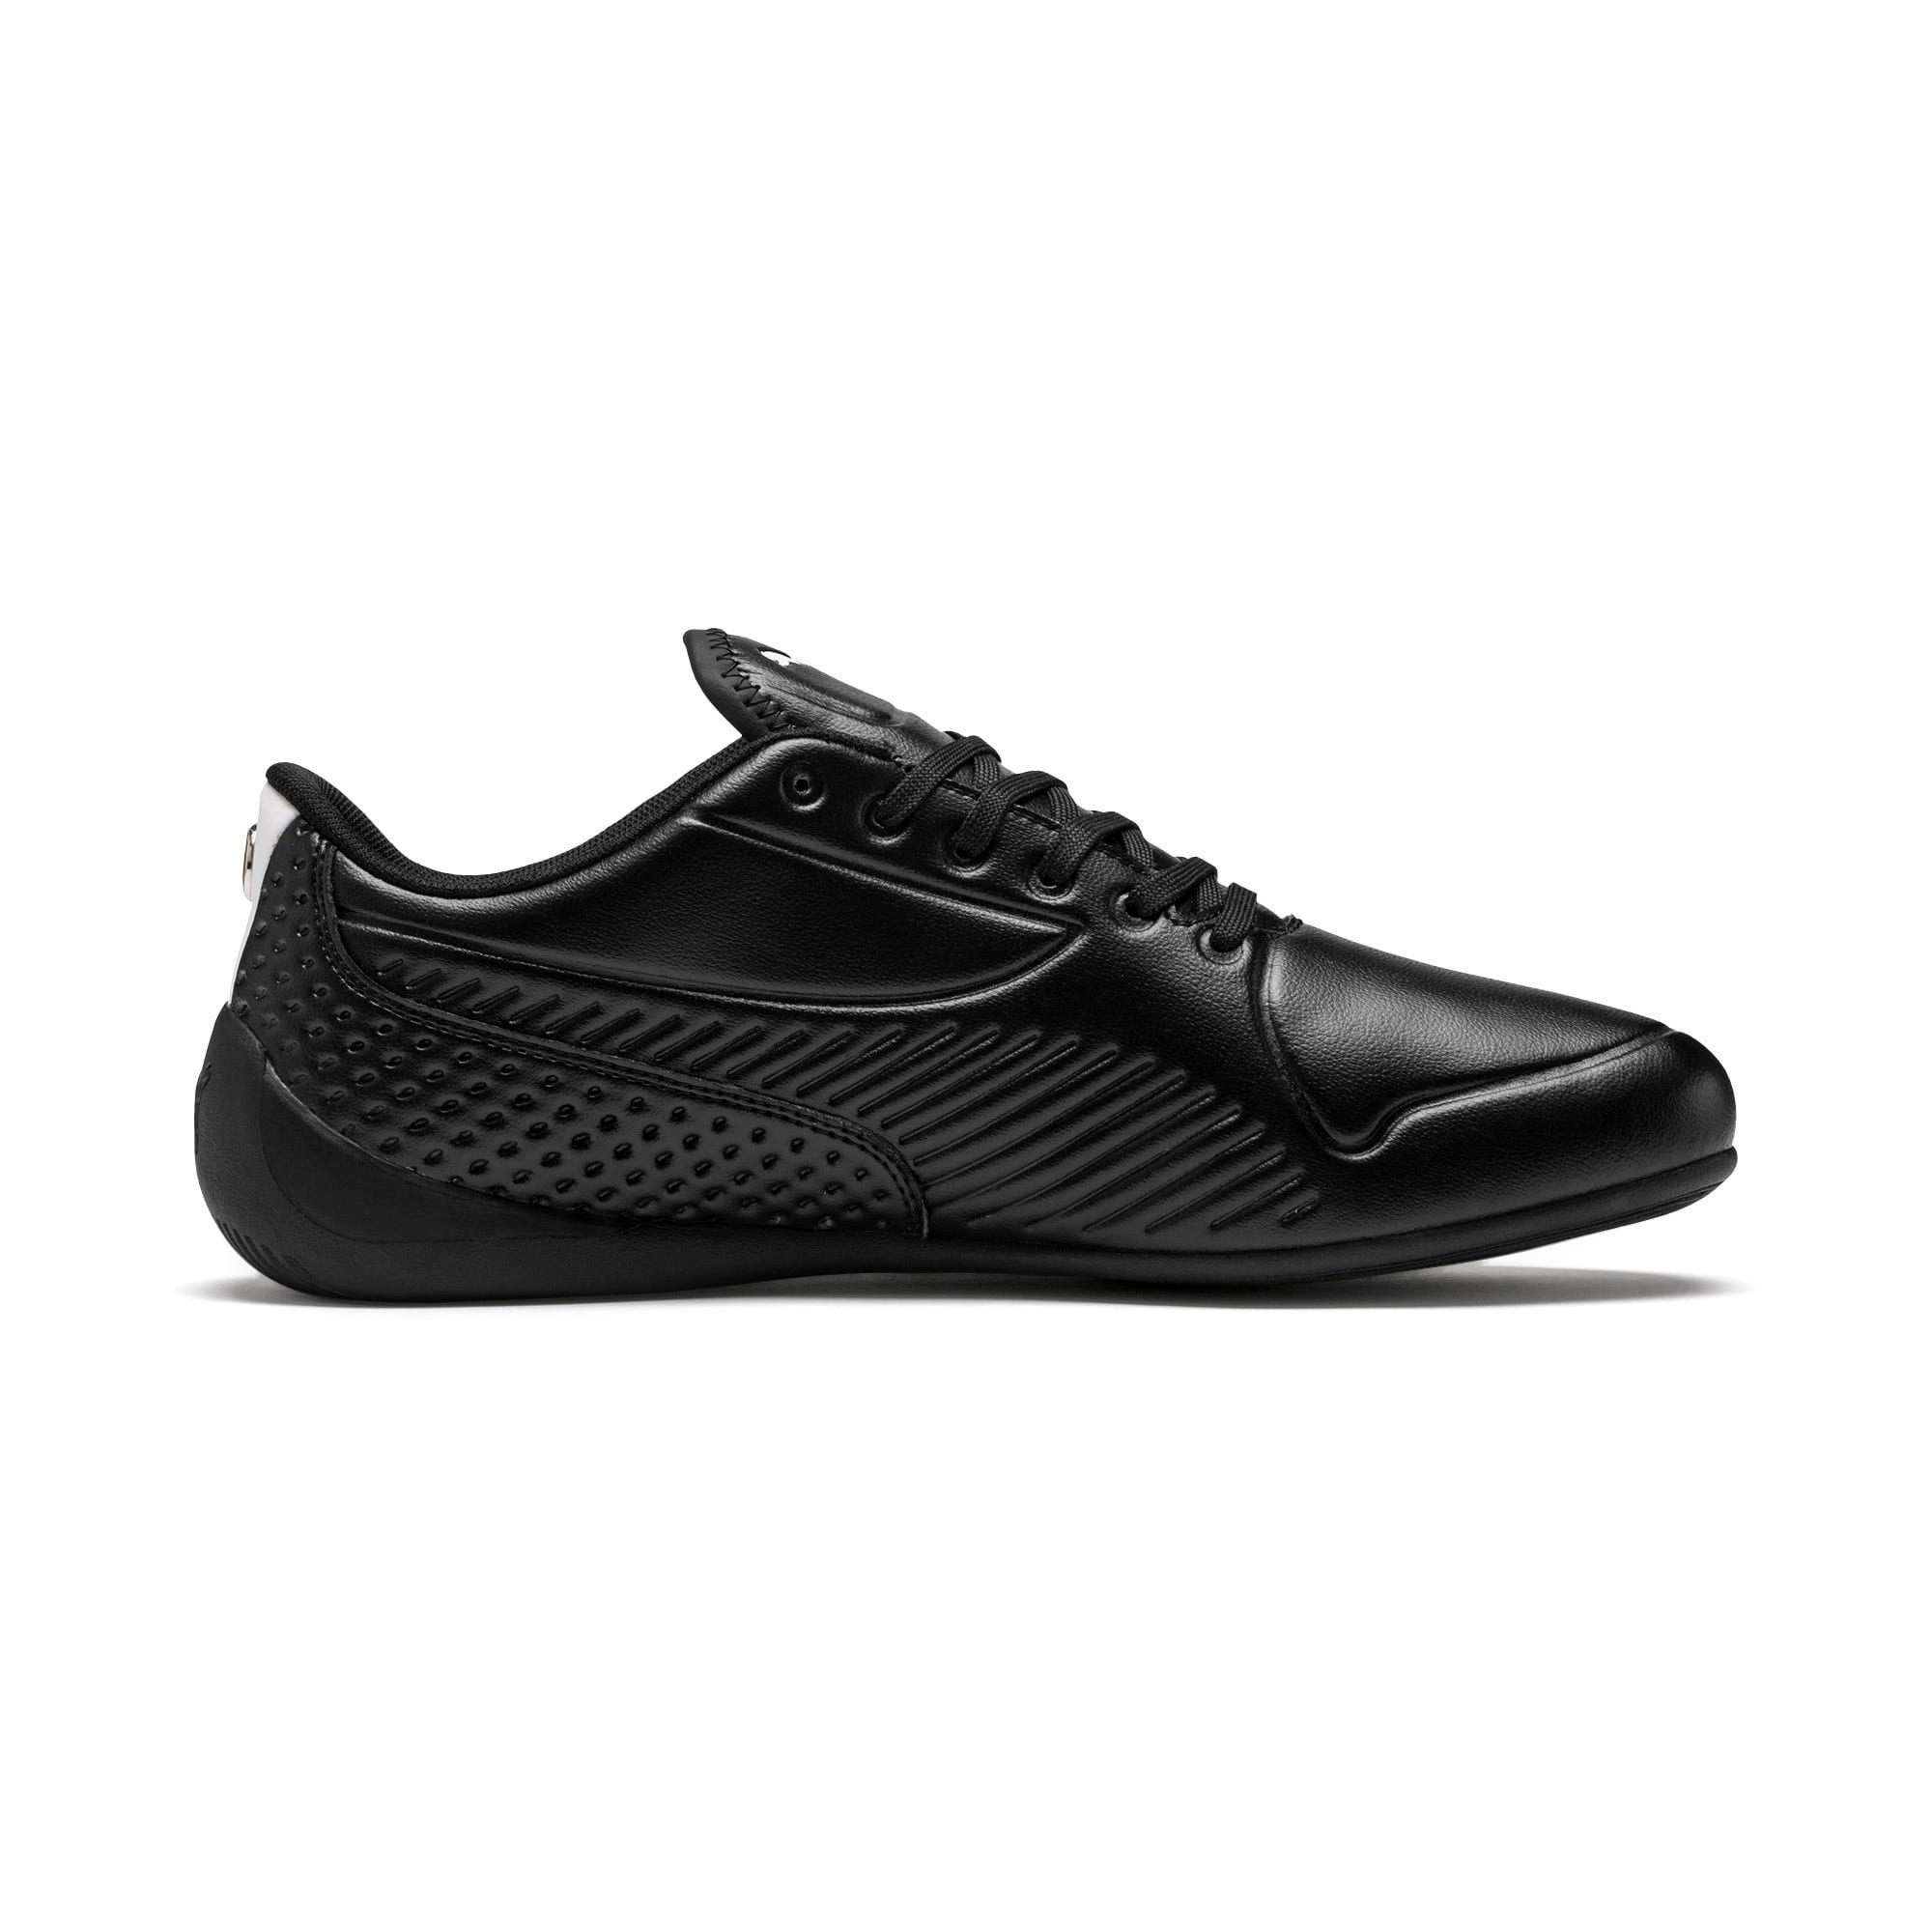 Thumbnail 6 of BMW MMS ドリフトキャット 7S ウルトラ スニーカー, Puma Black-Puma White, medium-JPN